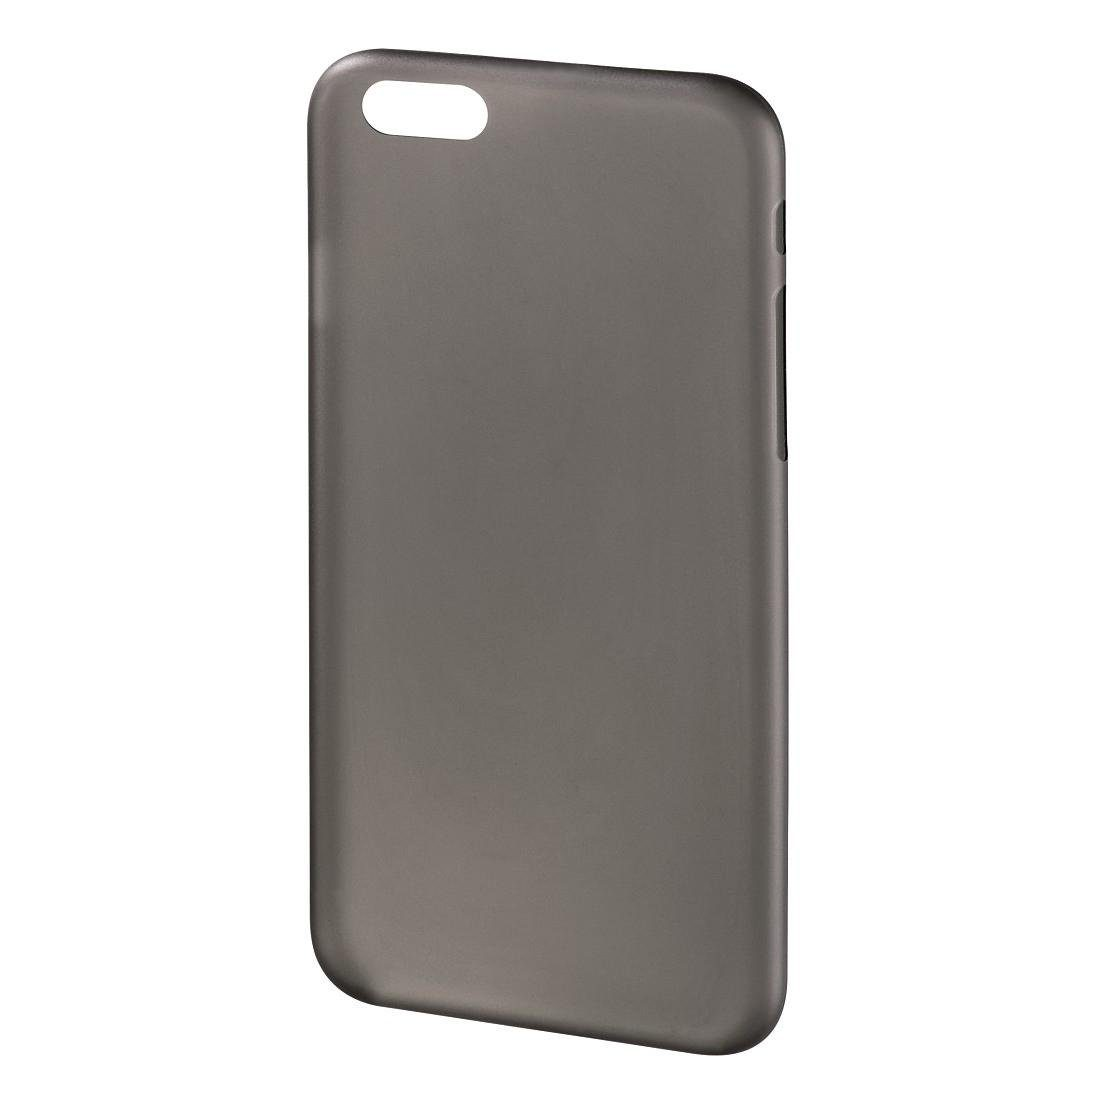 Hama Cover Ultra Slim für Apple iPhone 6/6s, Schwarz